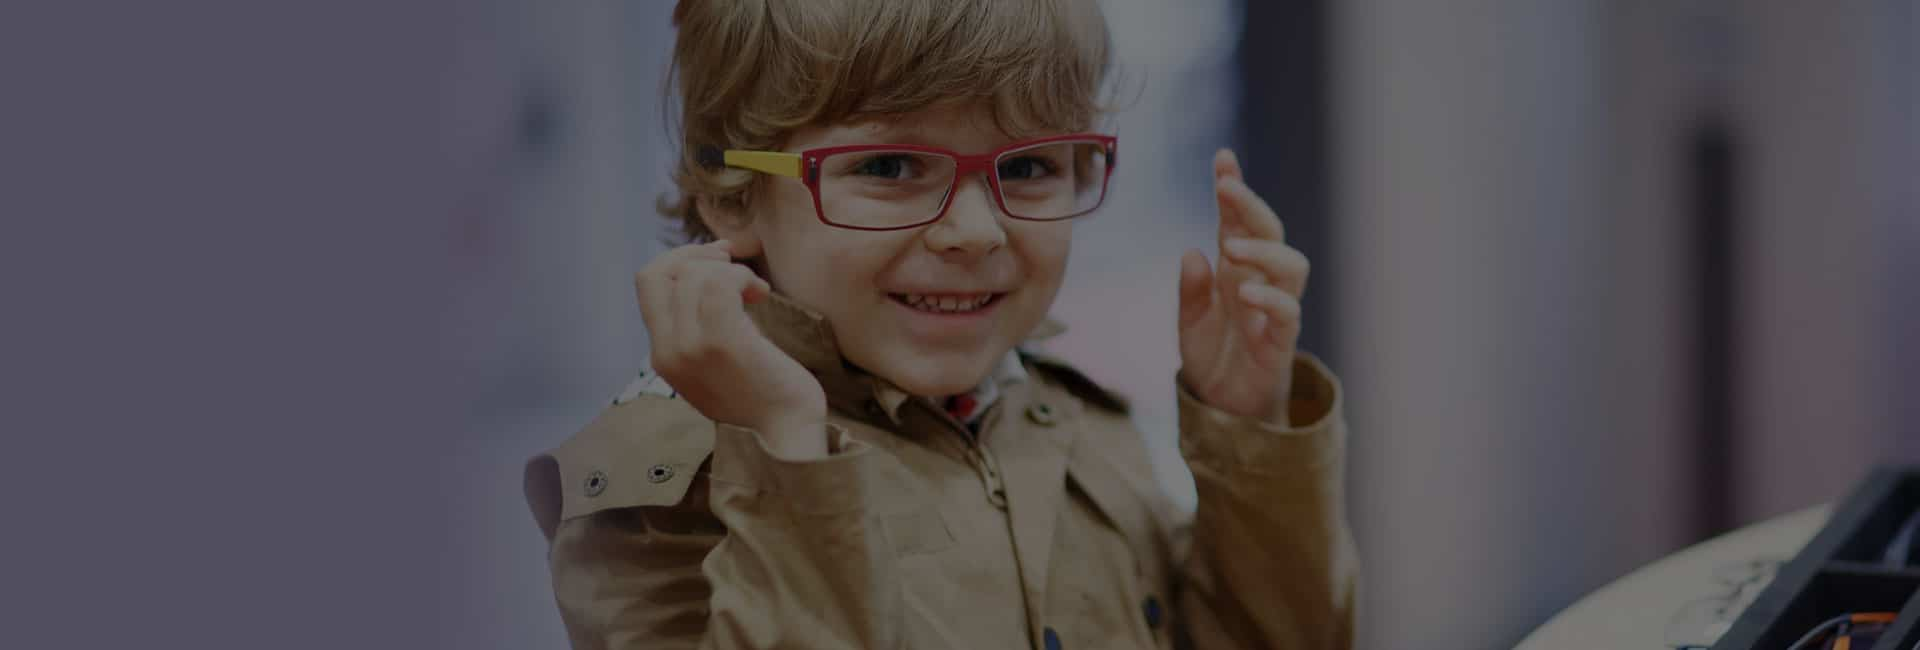 Kids Glasses Online | Eyeglasses Near Me NYC | NYC Girls Glasses | Miraflex | Girls Glasses NYC